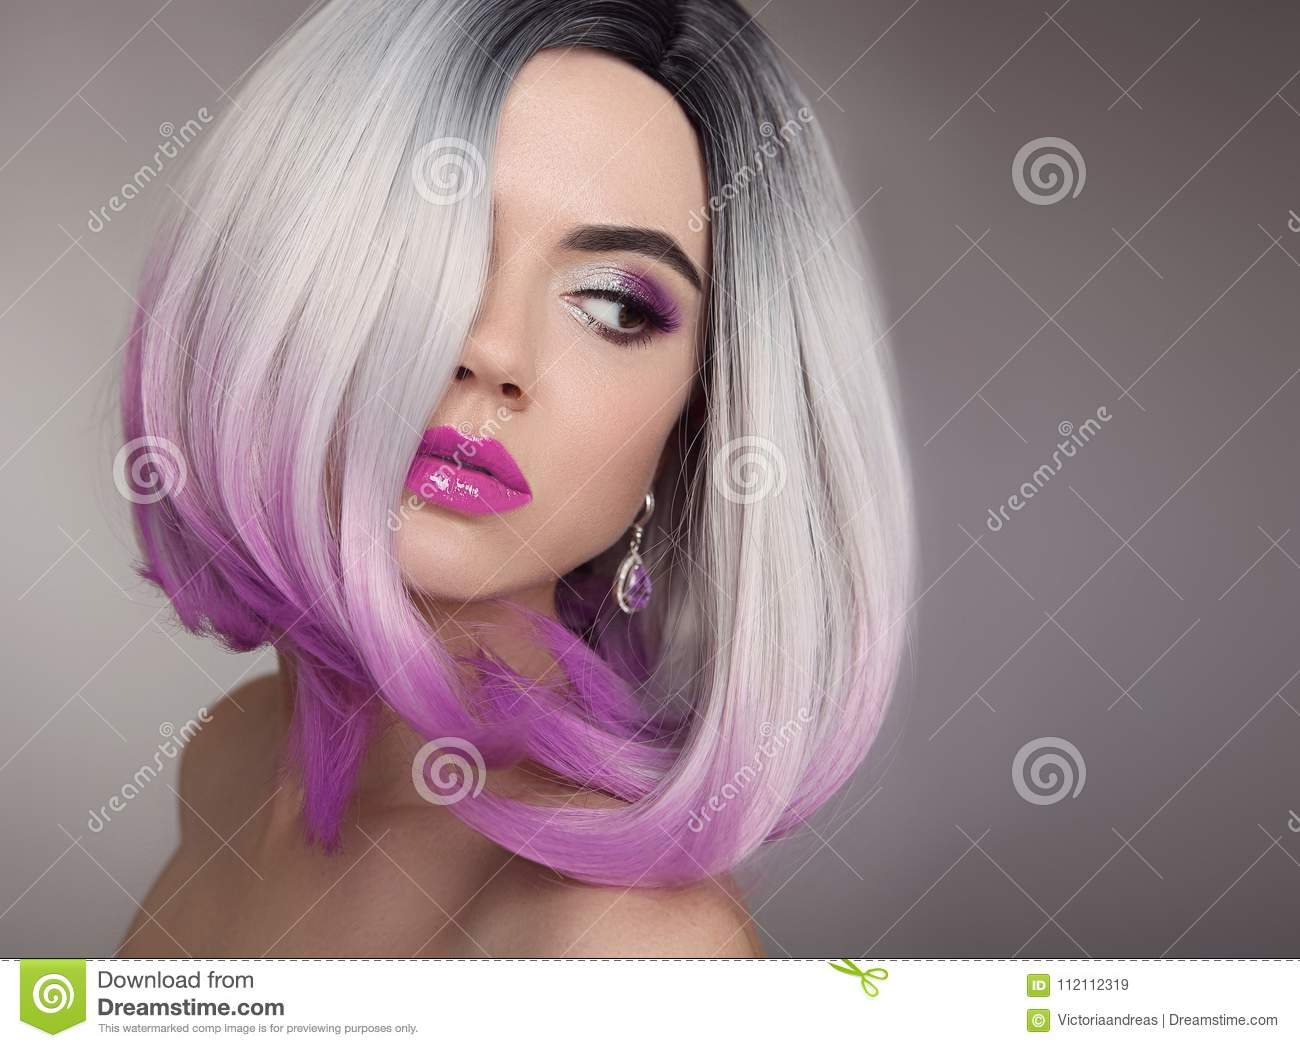 Ombre Bob Blonde Short Hairstyle Purple Makeup Beautiful Hair